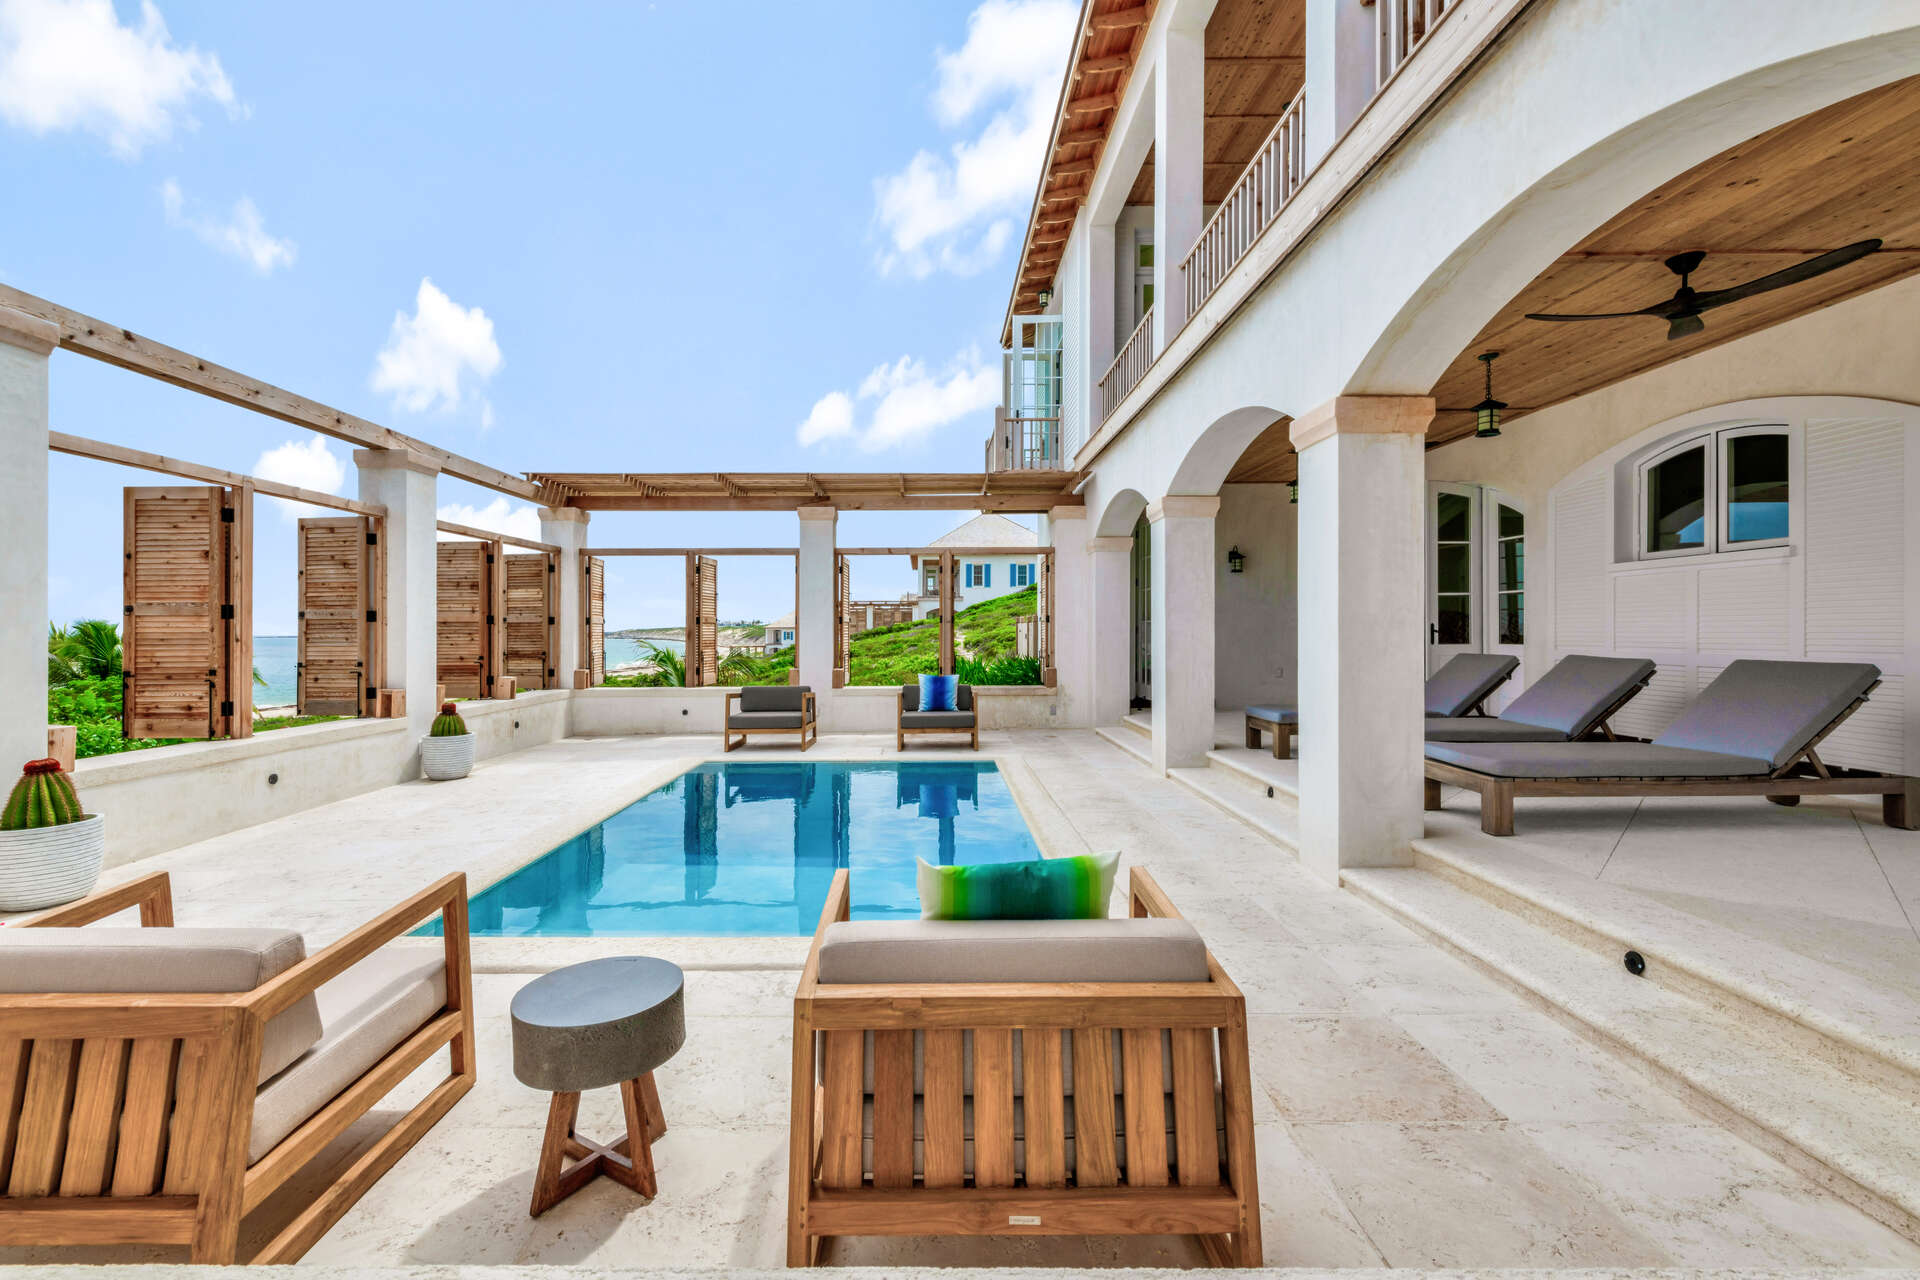 Luxury villa rentals caribbean - Turks and caicos - Ambergris cay - No location 4 - Villa 385 | 3 Bedroom - Image 1/30